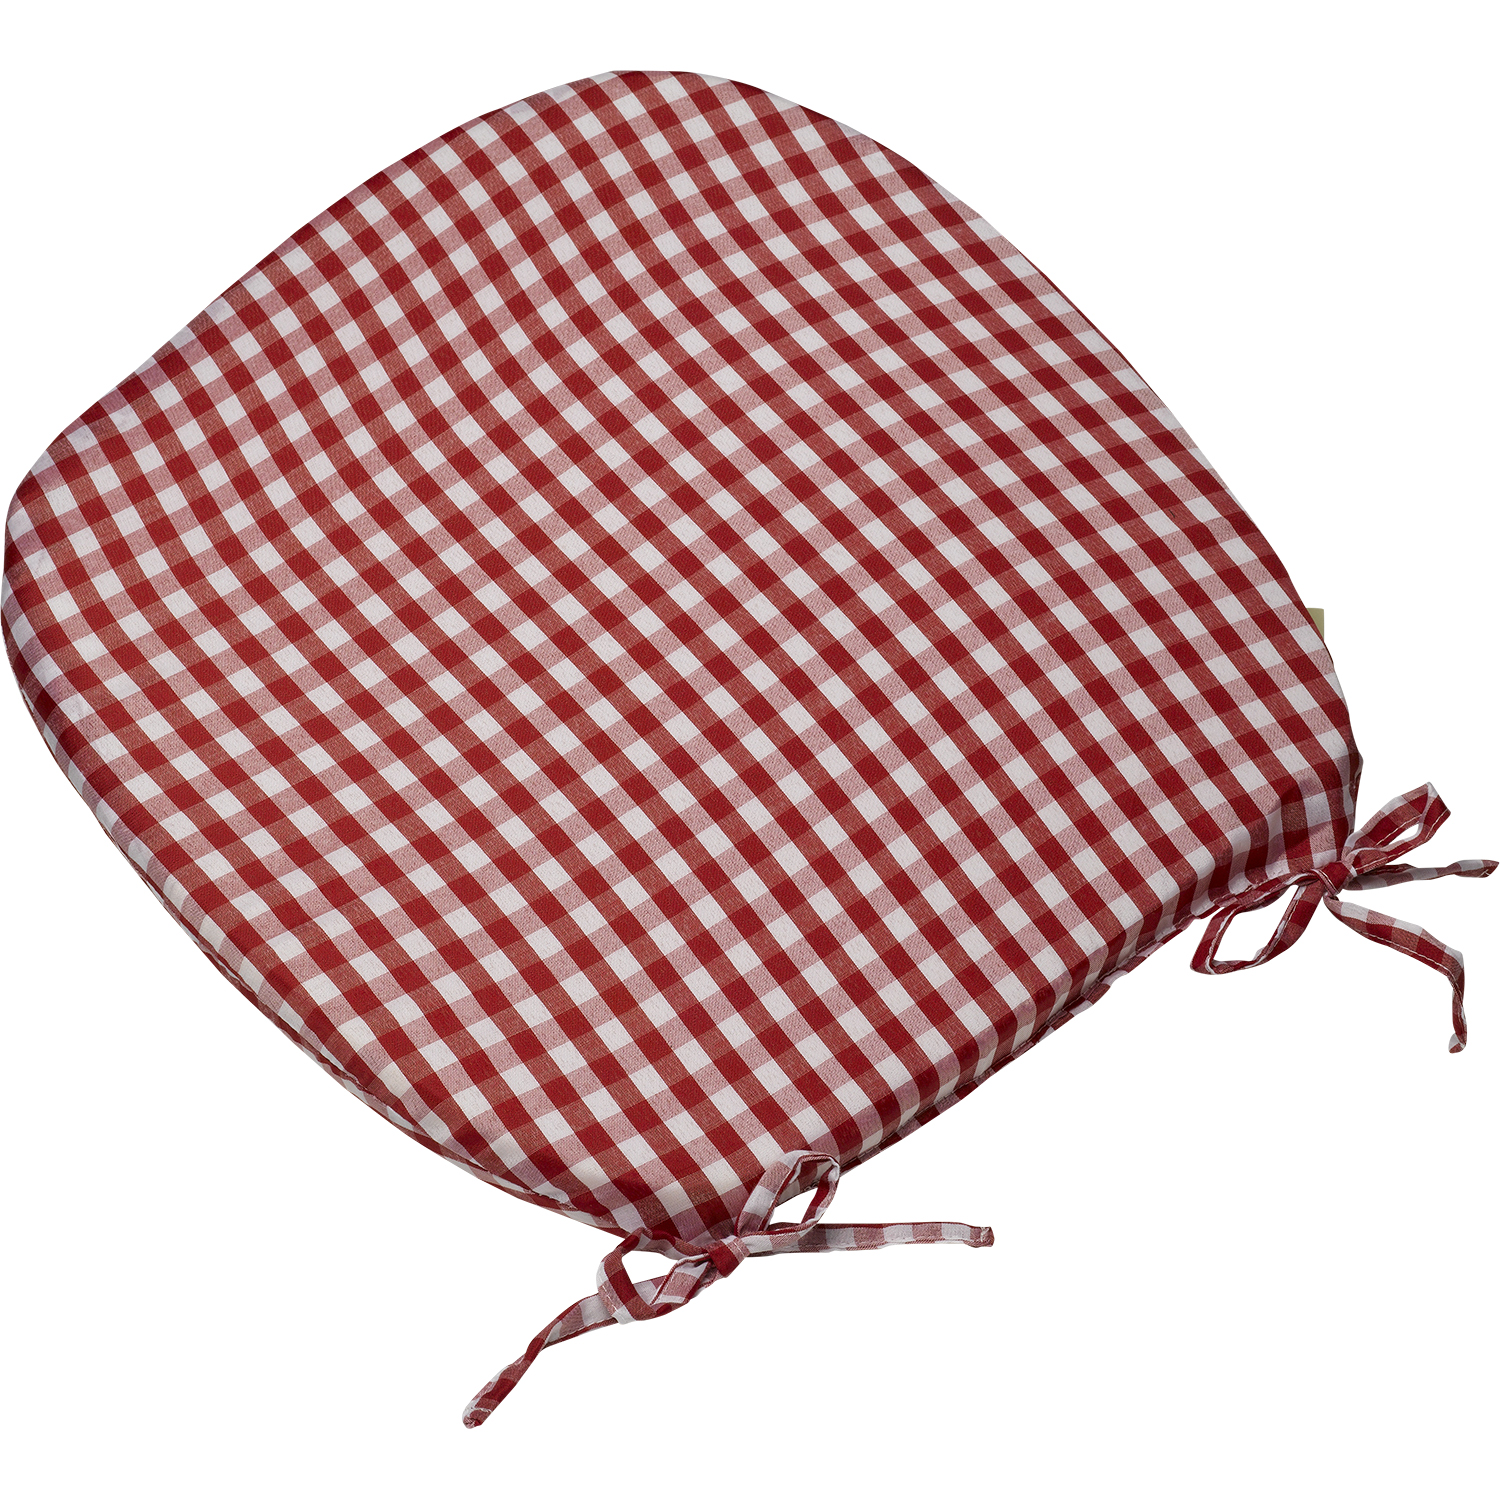 Tie On Rounded Gingham Chair Seat Pad Cushion